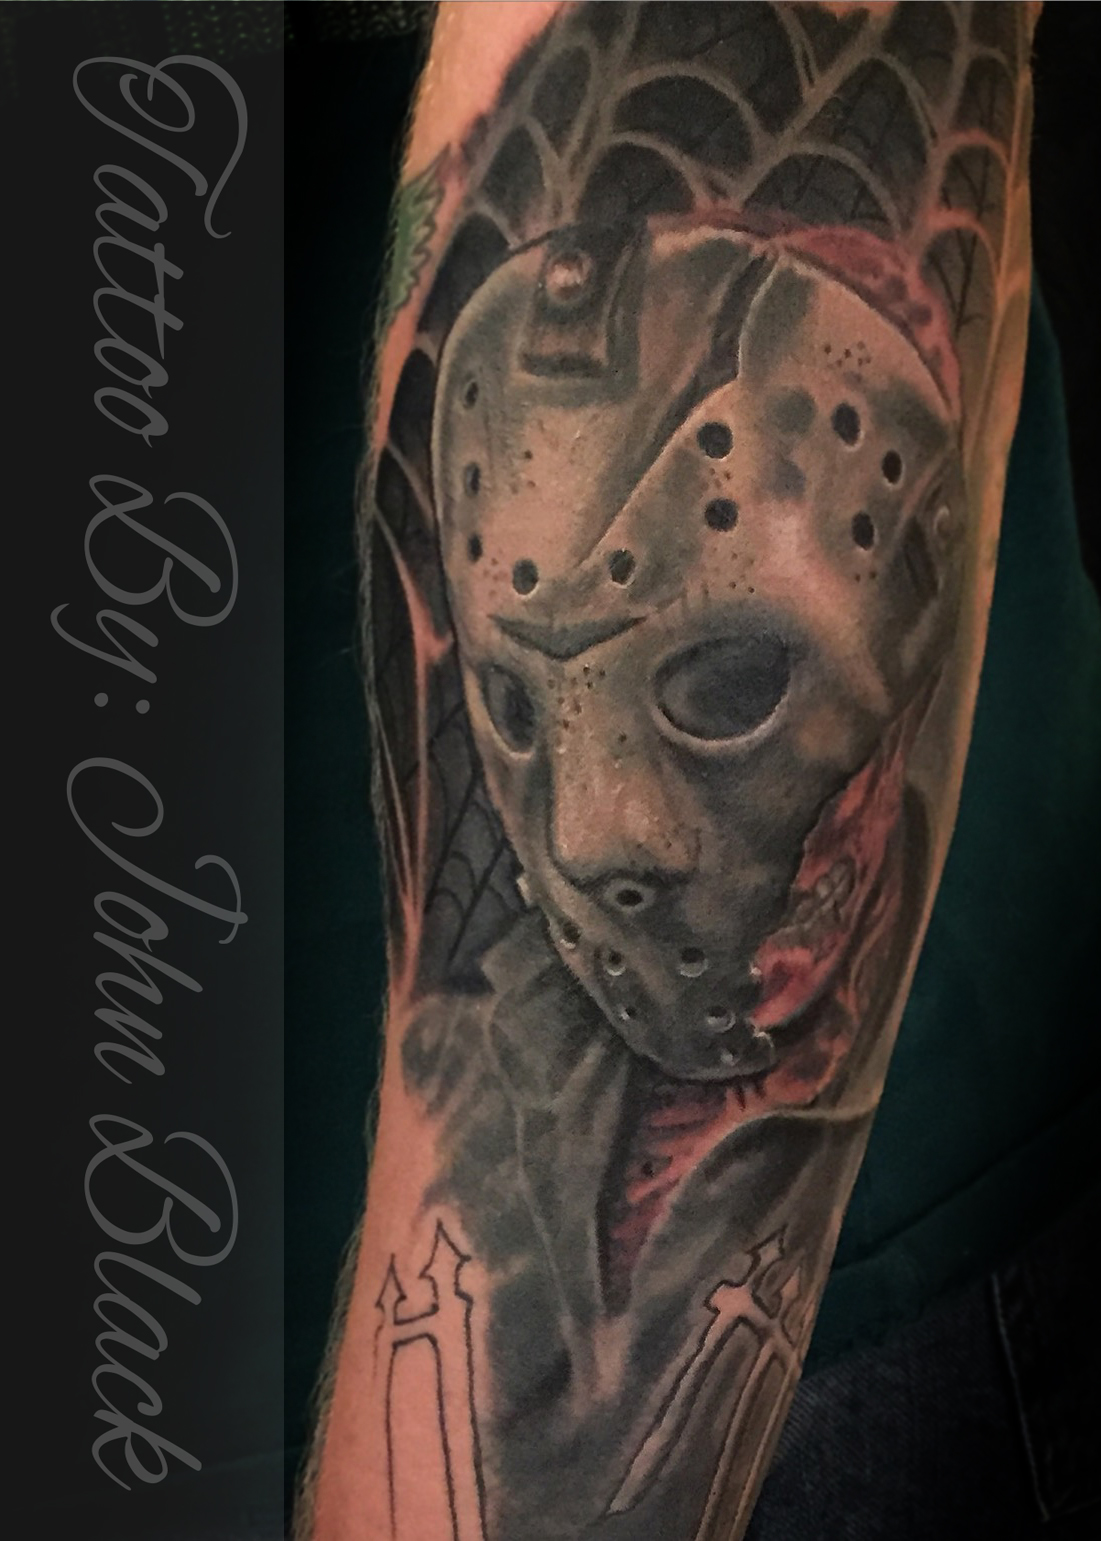 jason mask tattoo images galleries with a bite. Black Bedroom Furniture Sets. Home Design Ideas